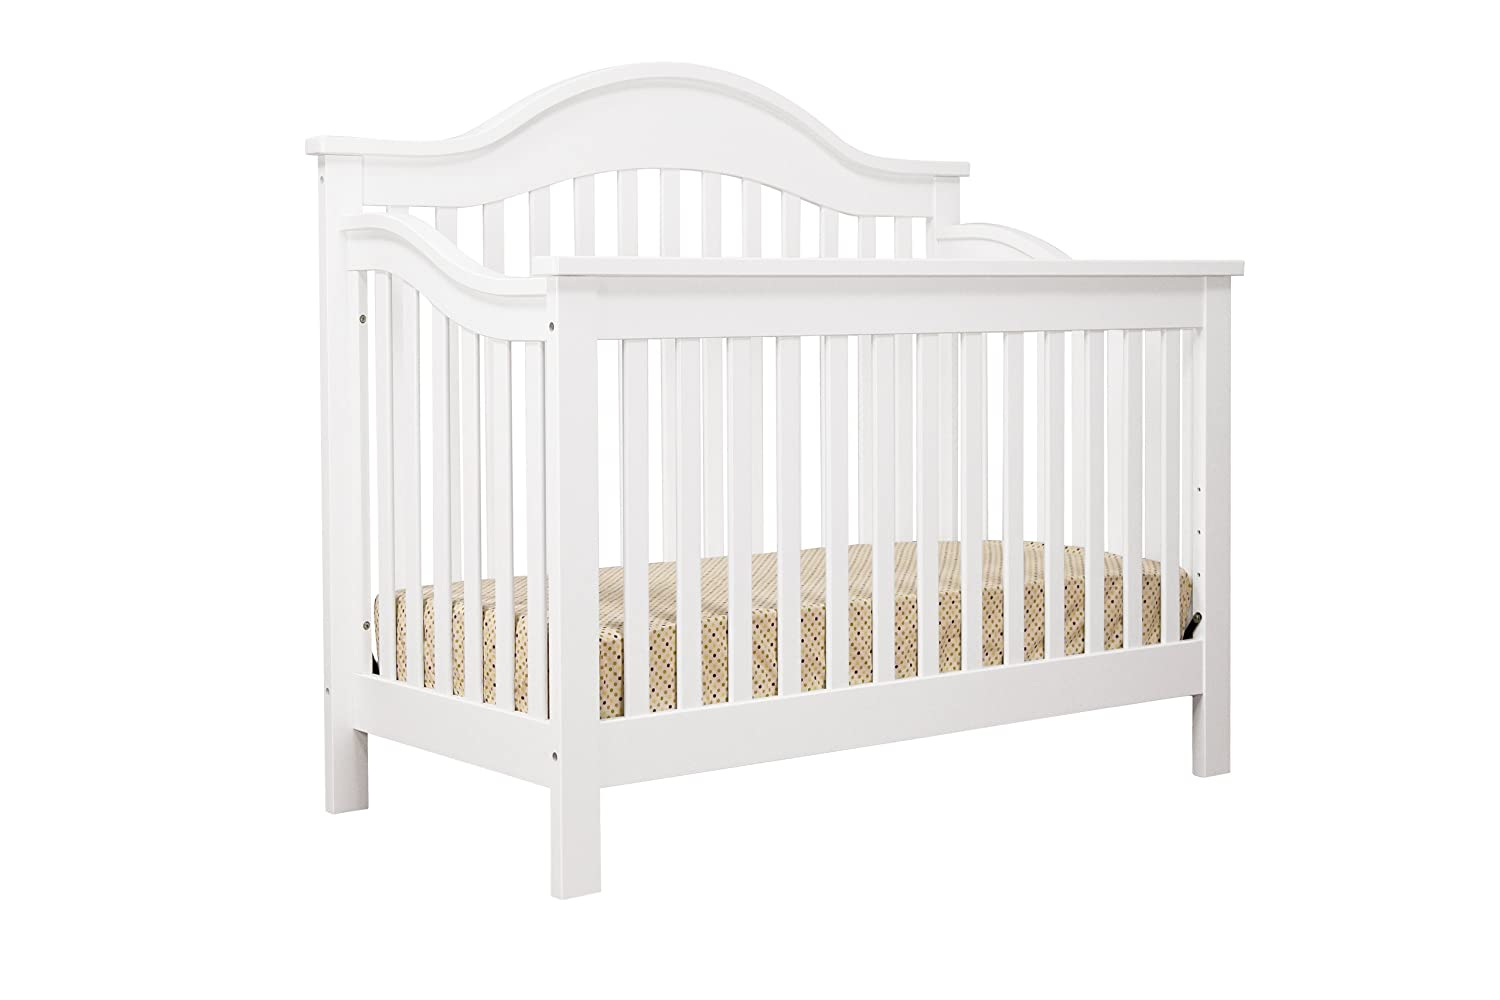 Crib heights for babies - 71vxban1erl _sl1500_ Jpg